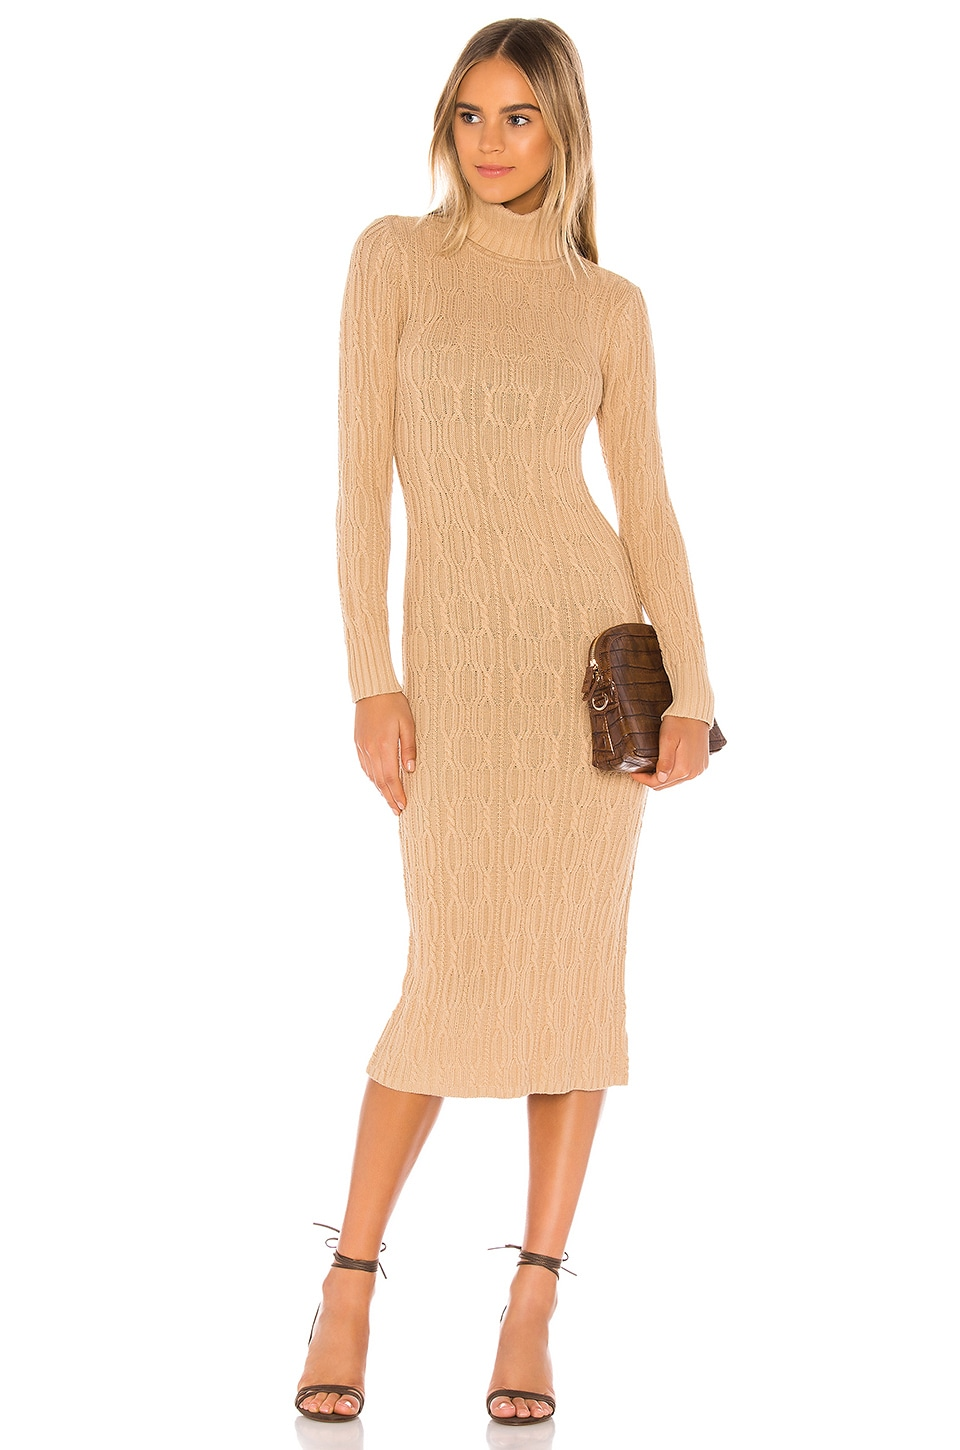 525 america Turtleneck Cable Dress in Doe